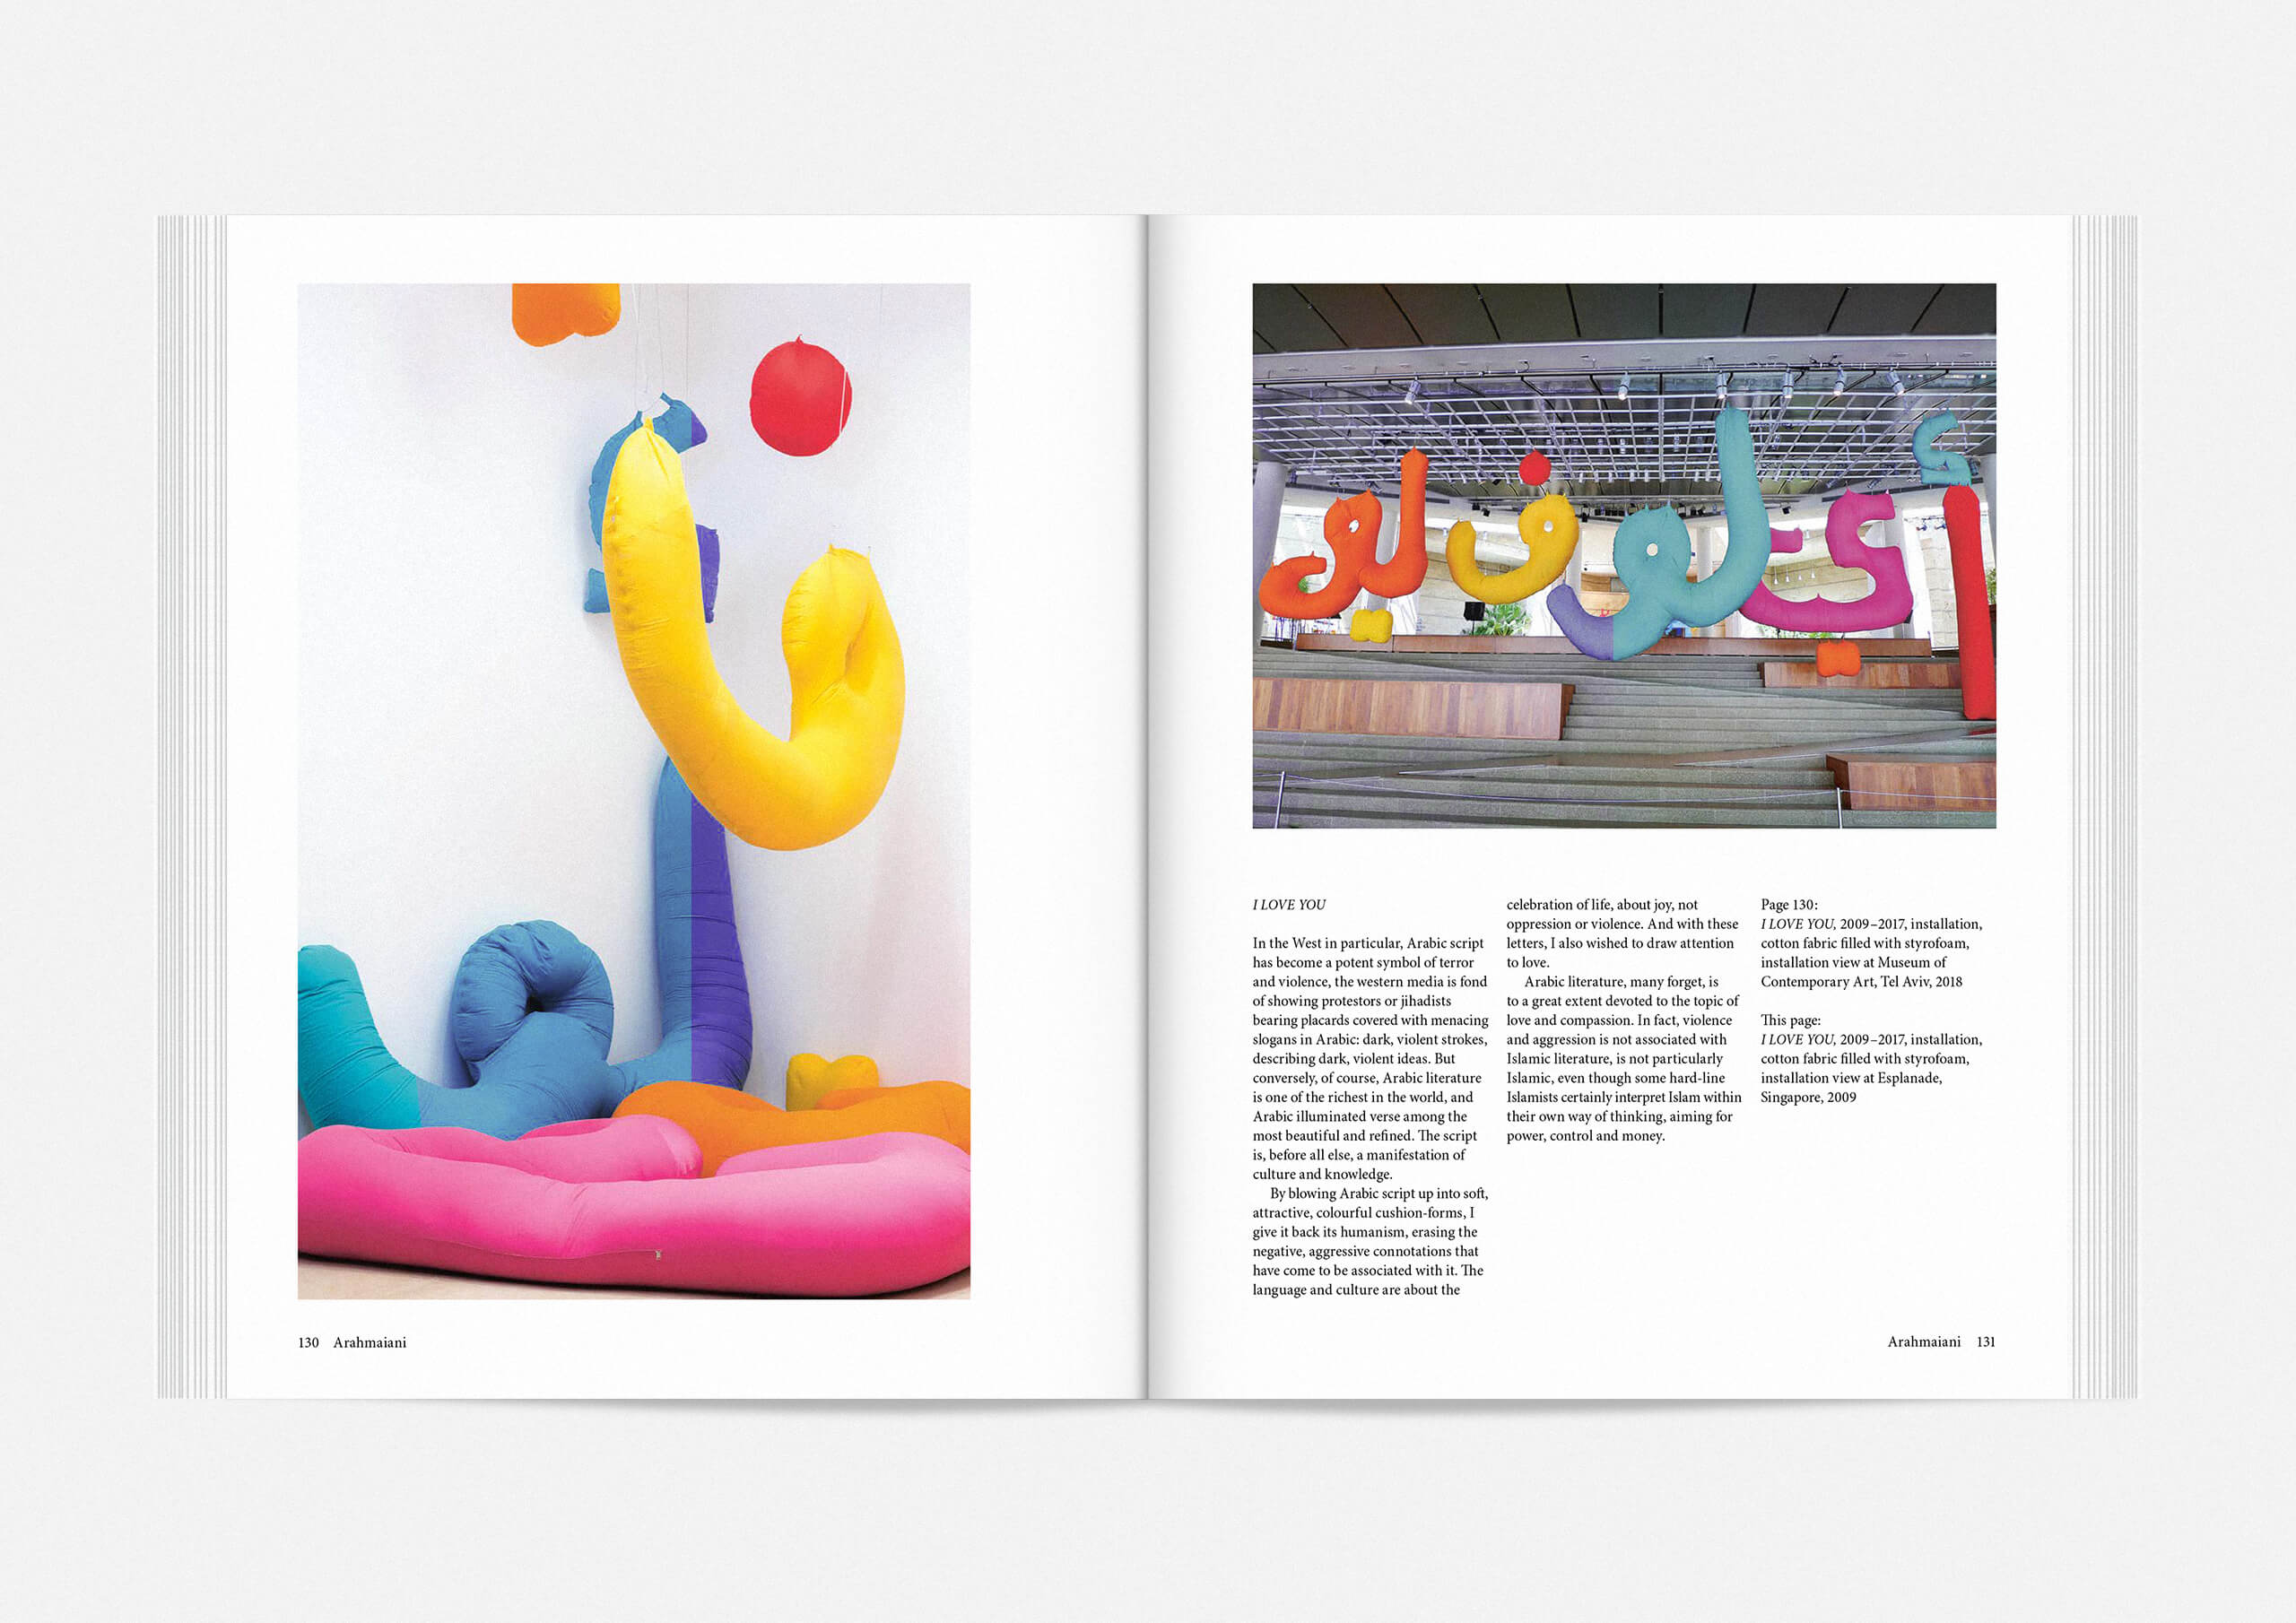 http://www.neuegestaltung.de/media/pages/clients/protocollum-issue-no-05/515da03f66-1597415140/protocollum-5-page-130131-ng.jpg